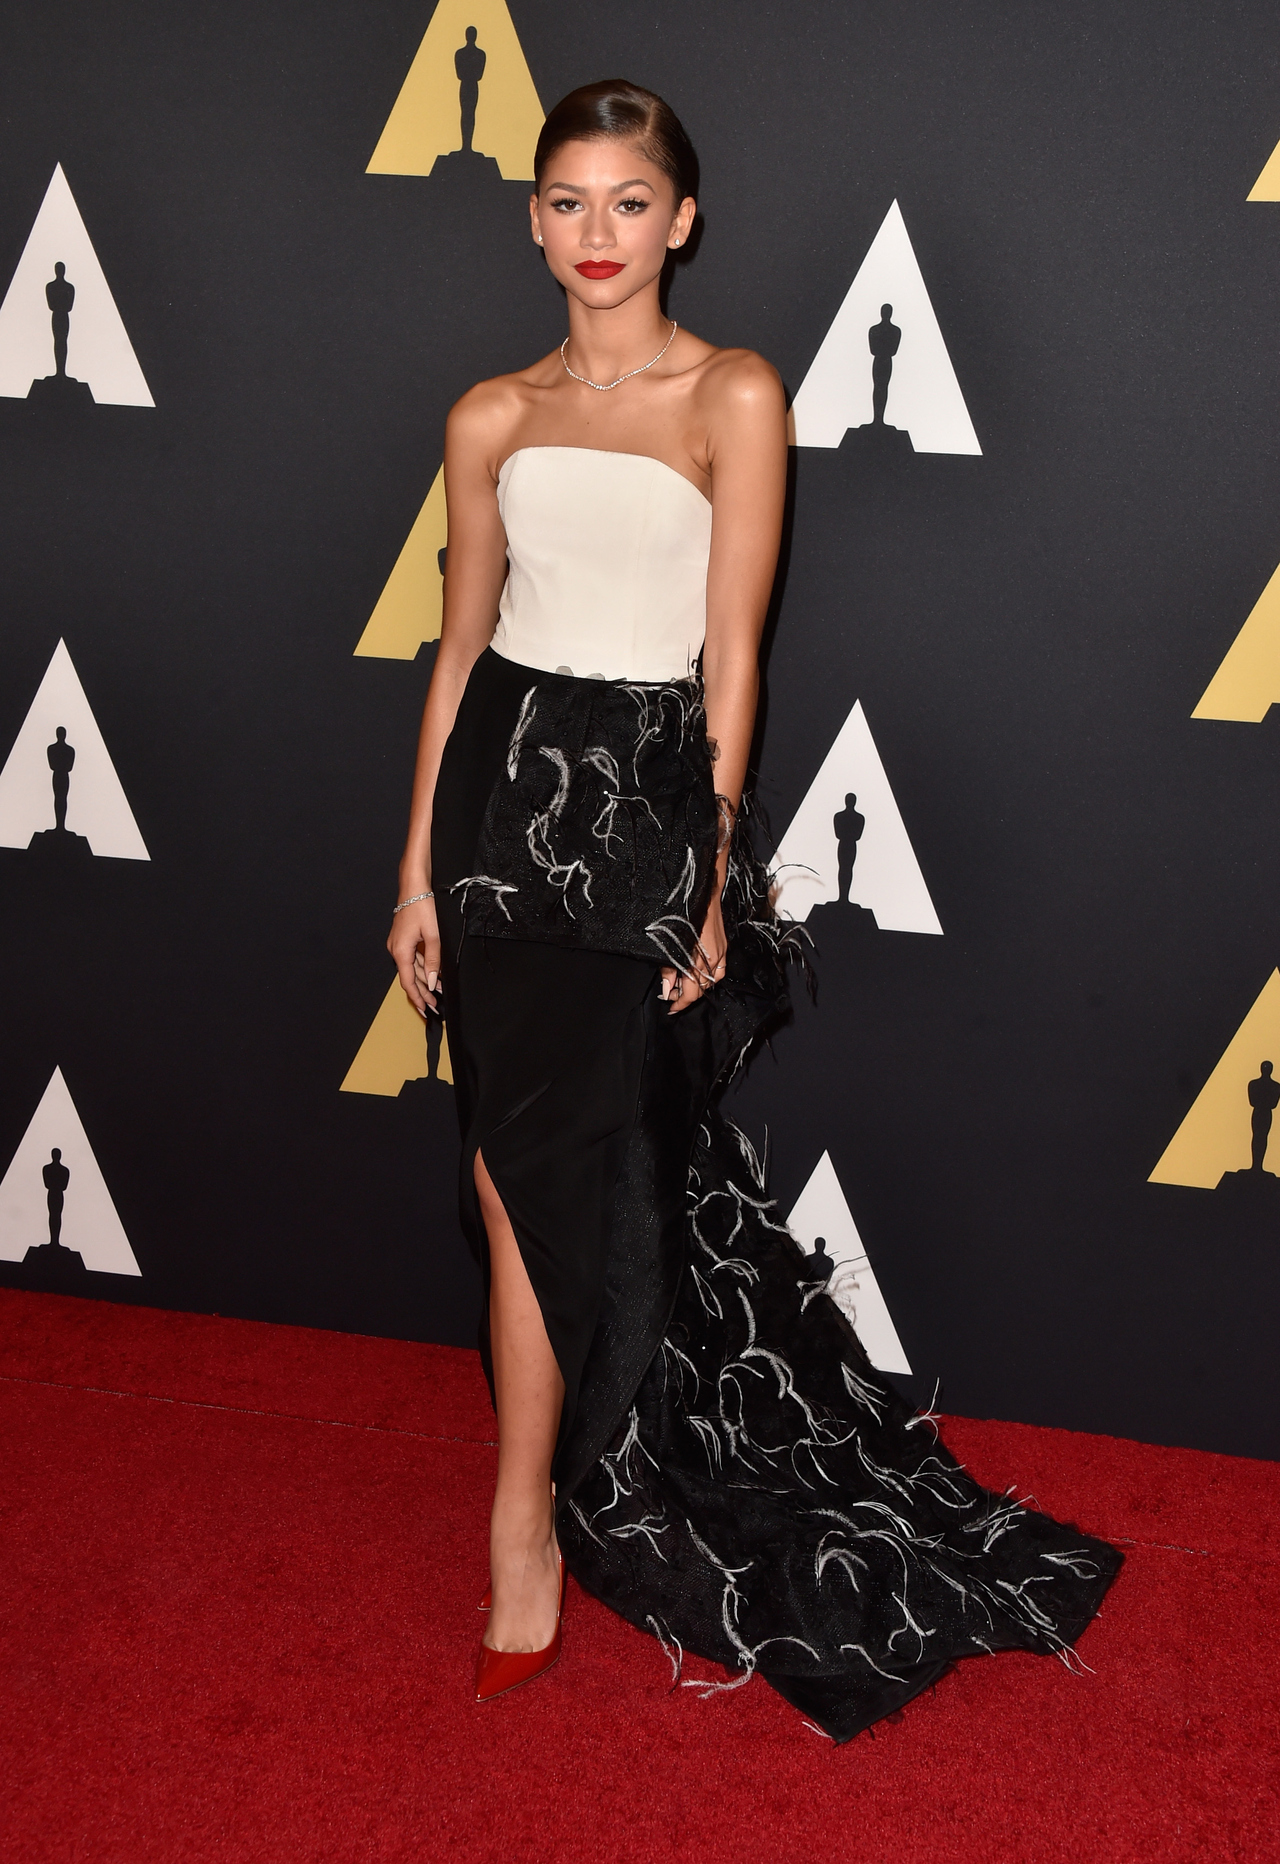 zendaya-coleman-christian-siriano-academy-motion-picture-arts-sciences-governors-awards/